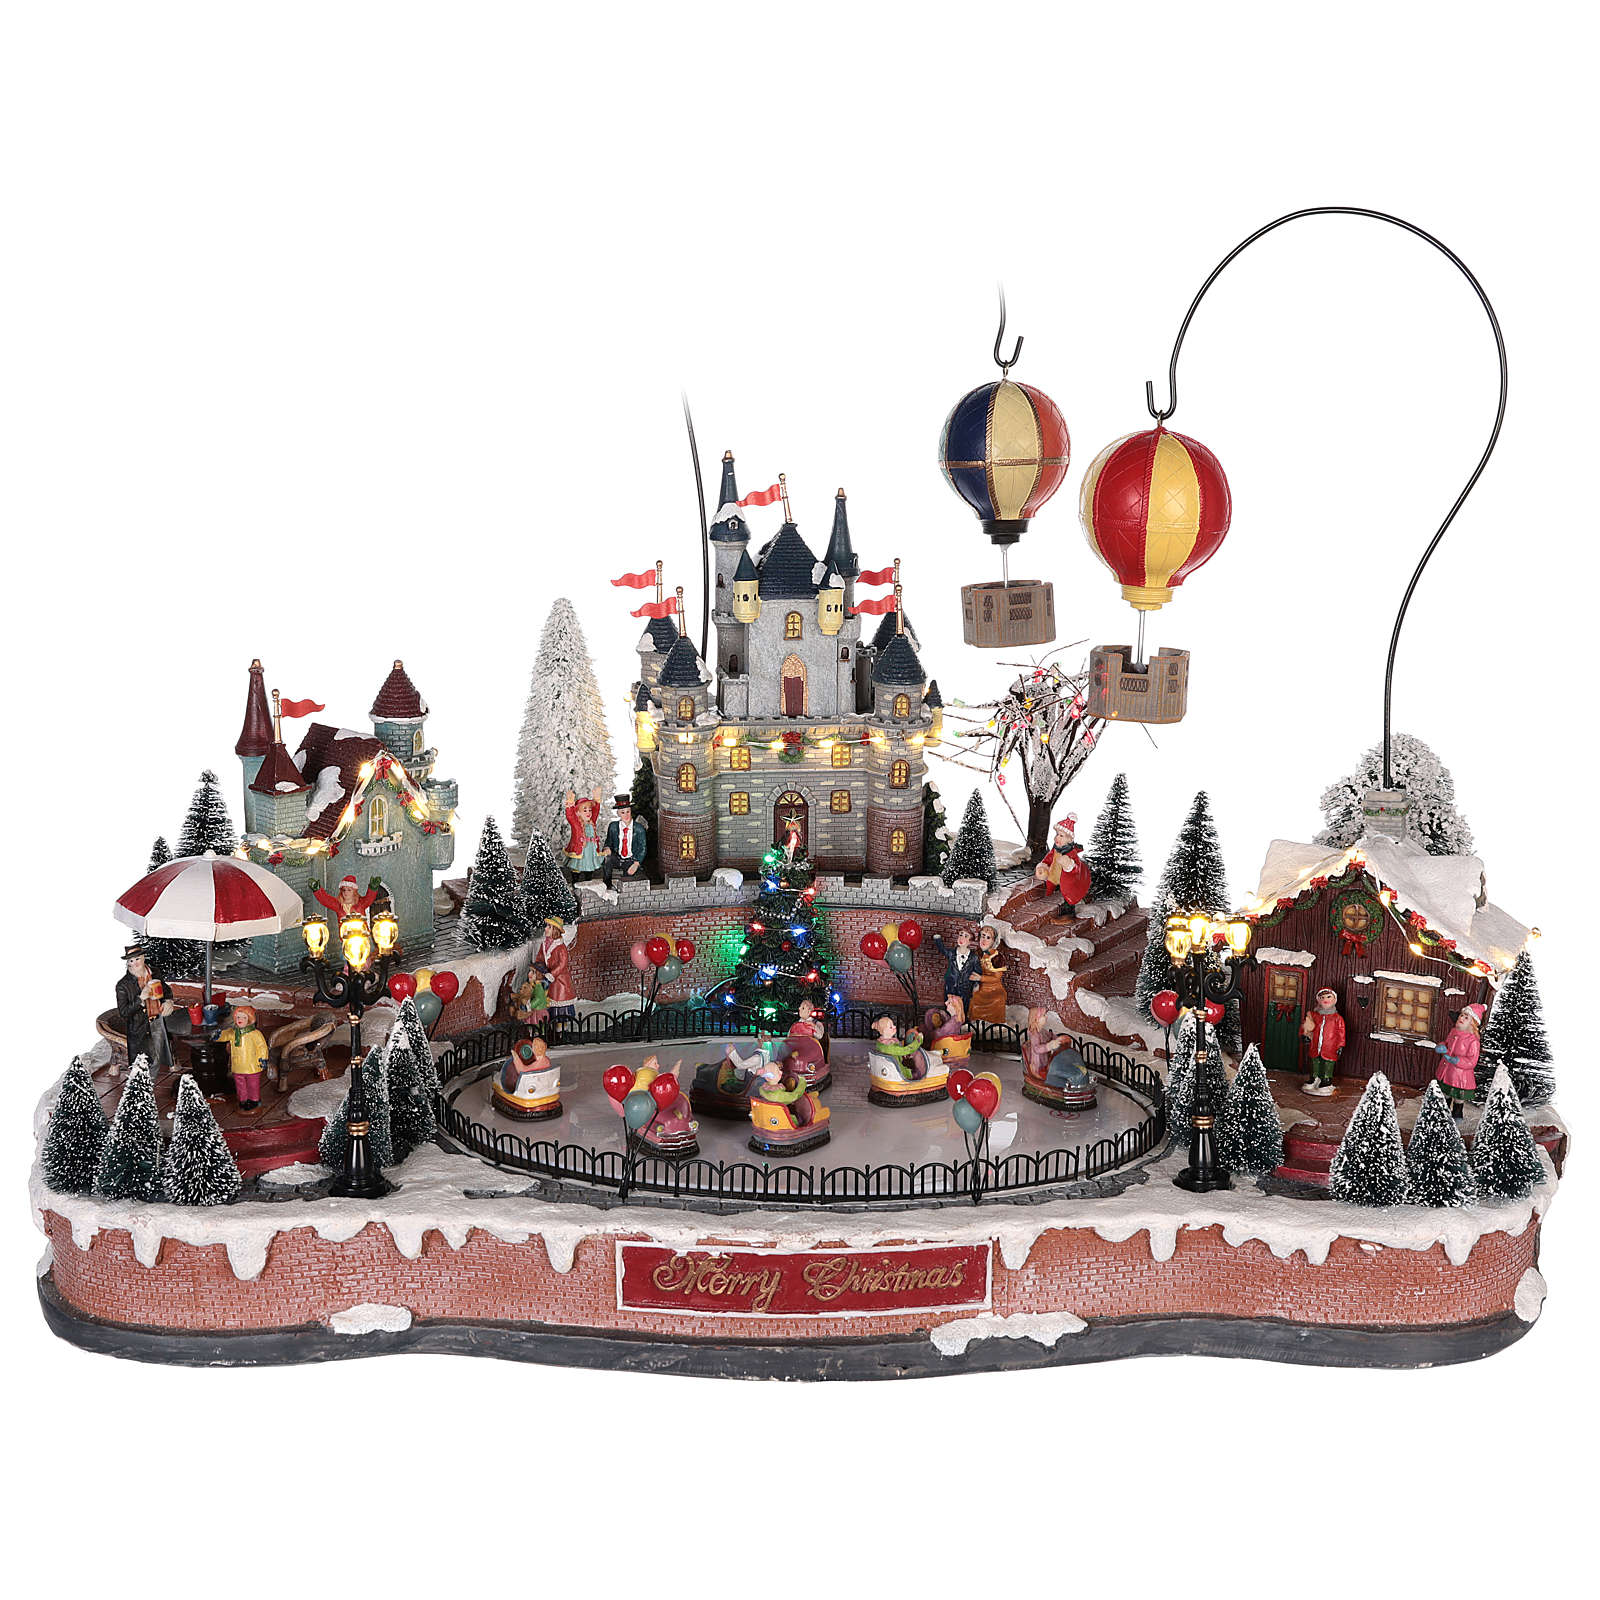 Christmas village with hot air balloons and track for cars 30x65x40 cm 3